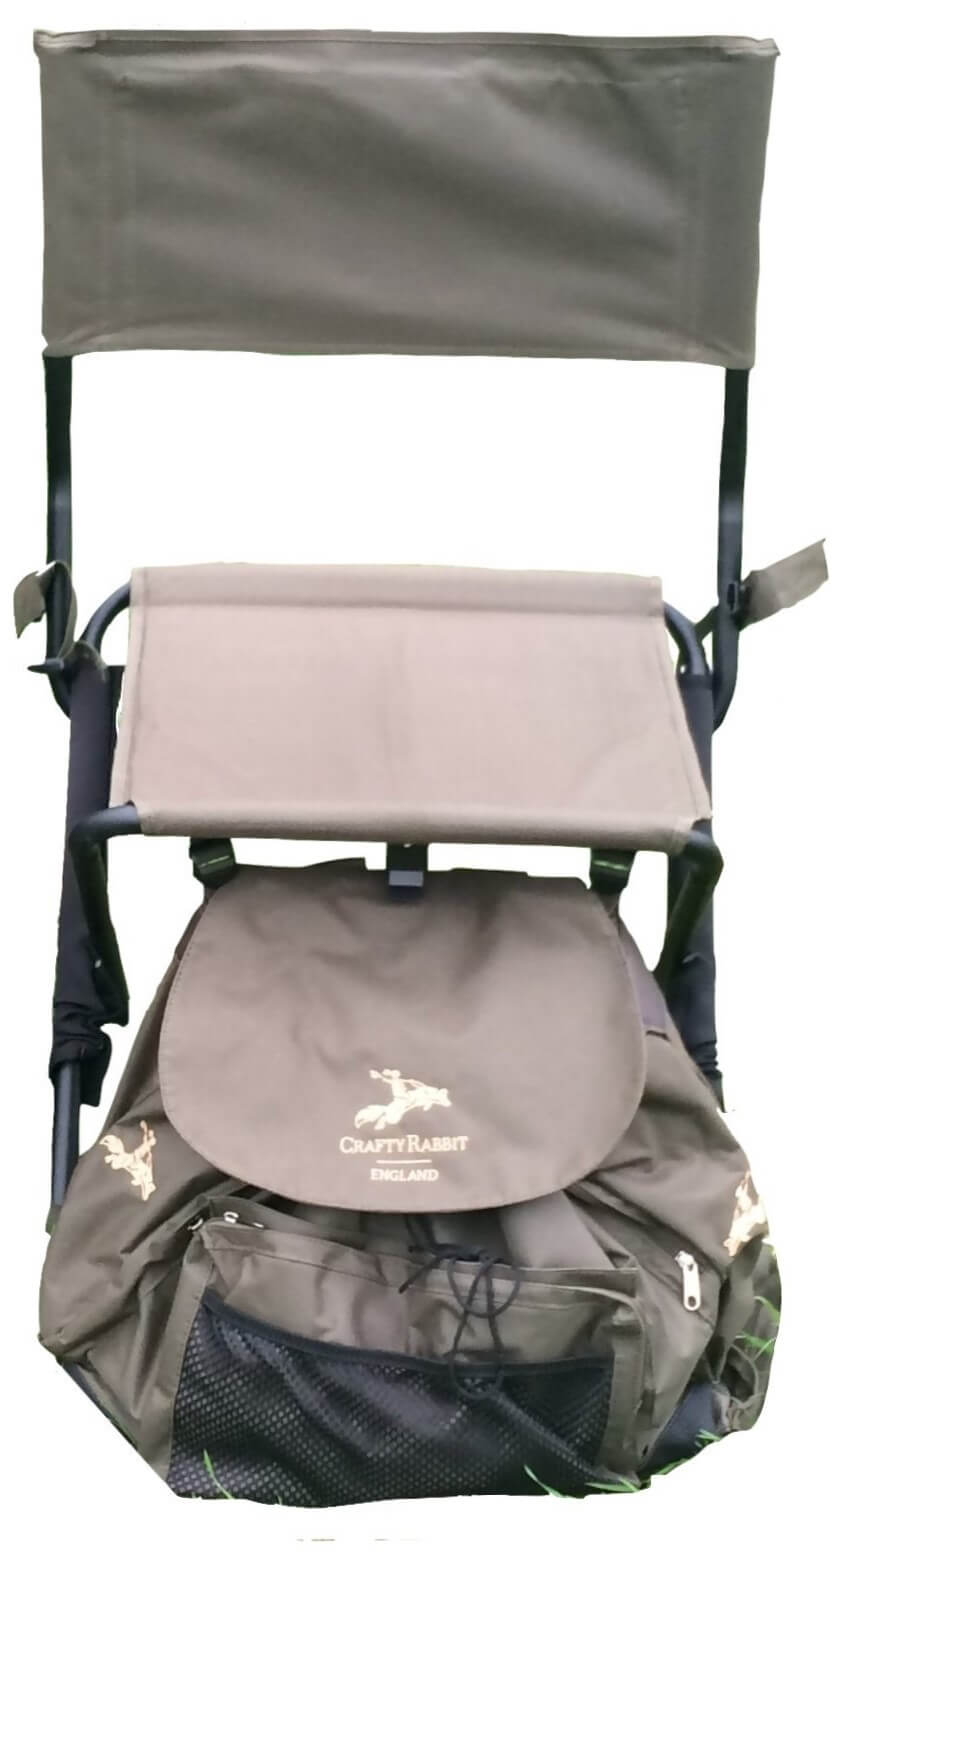 Extra Large Comfortable Folding Backpack Chair